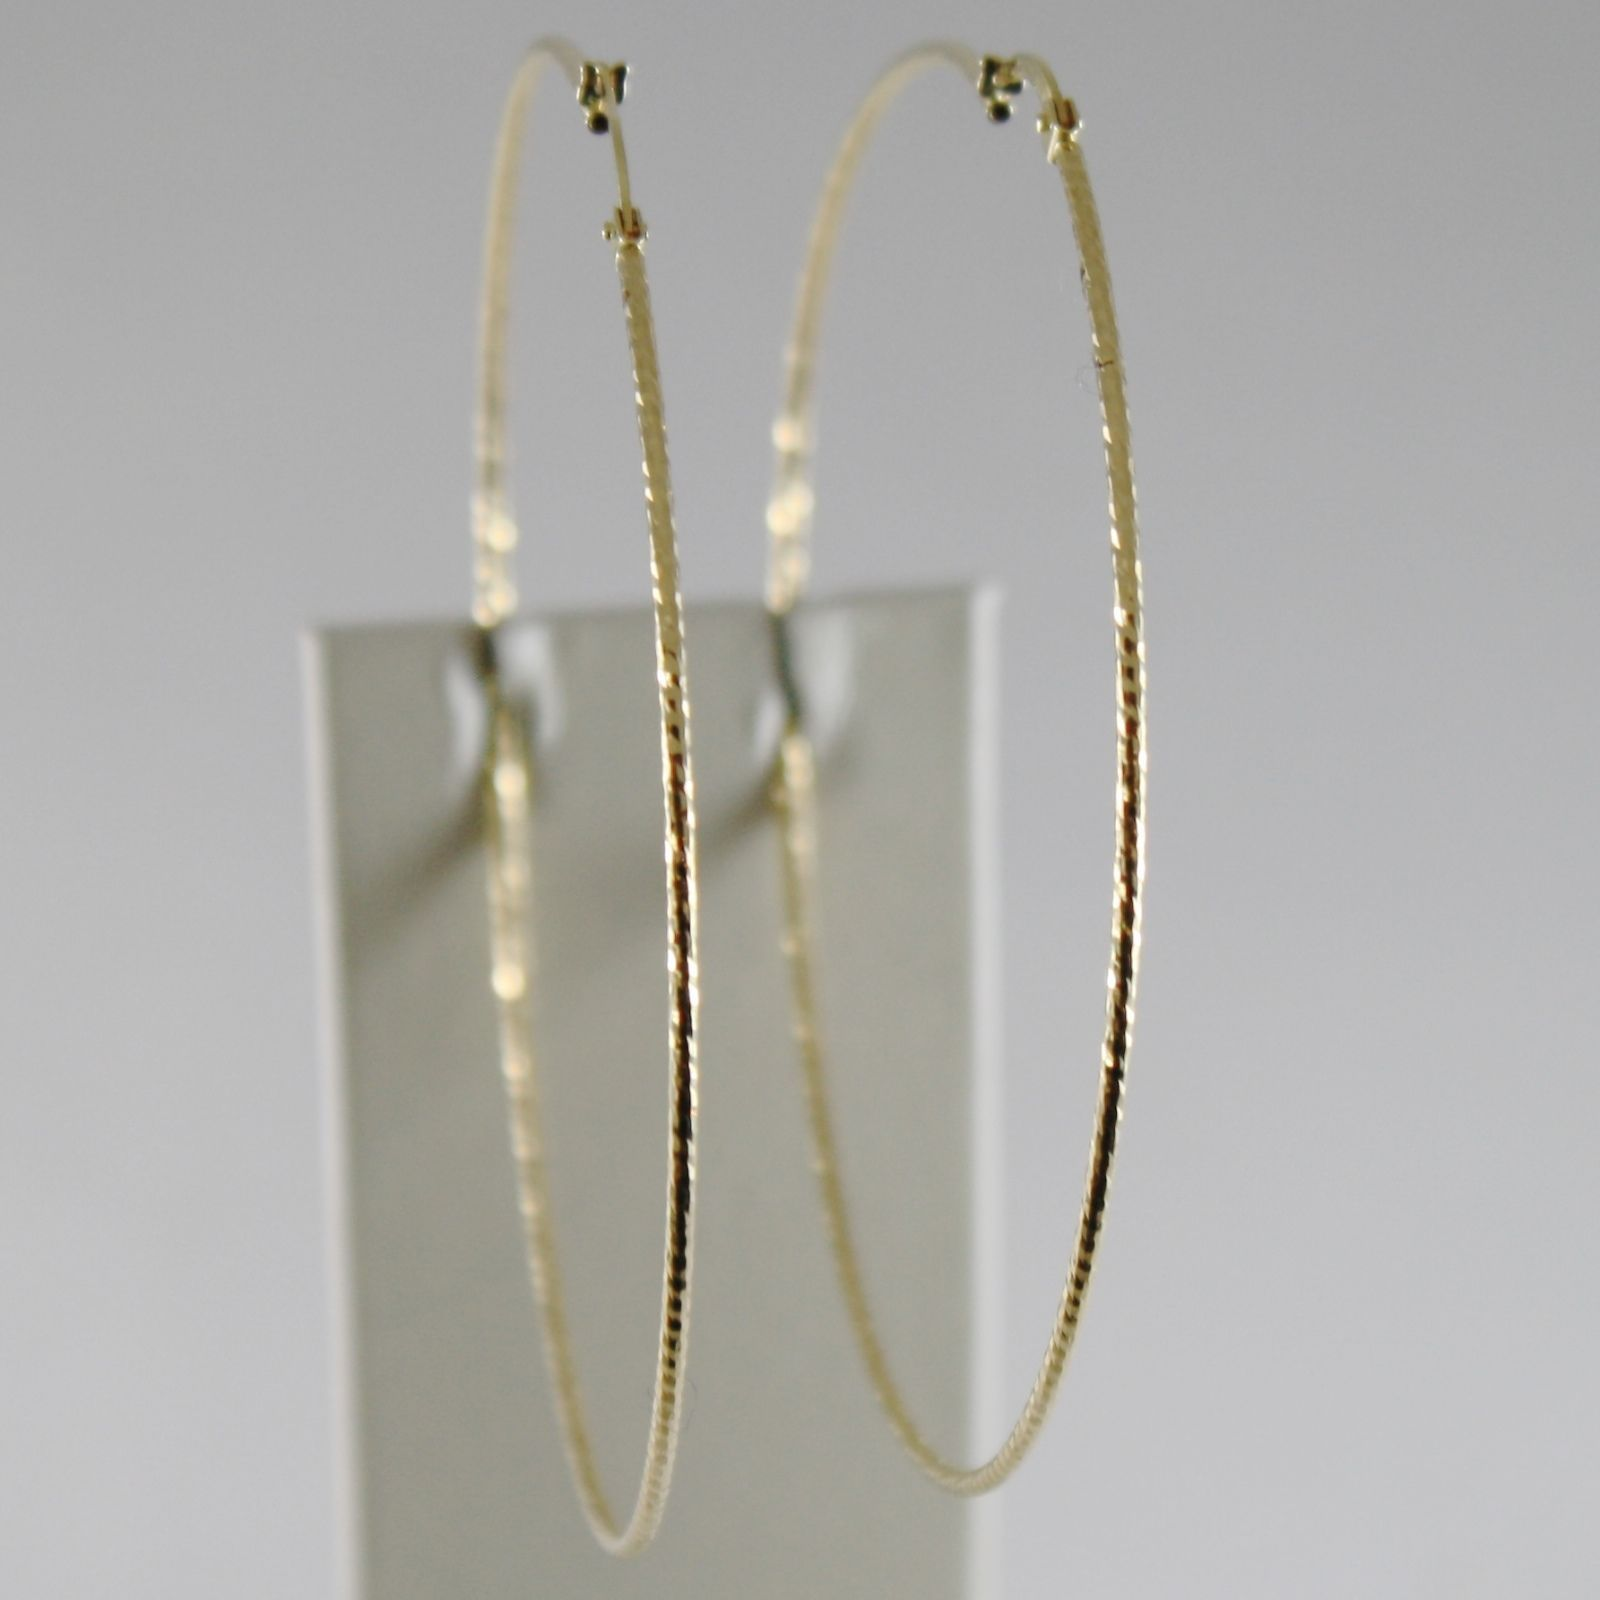 18K YELLOW GOLD STRIPED WORKED EARRINGS BIG CIRCLE HOOP 73 MM DIAM MADE IN ITALY